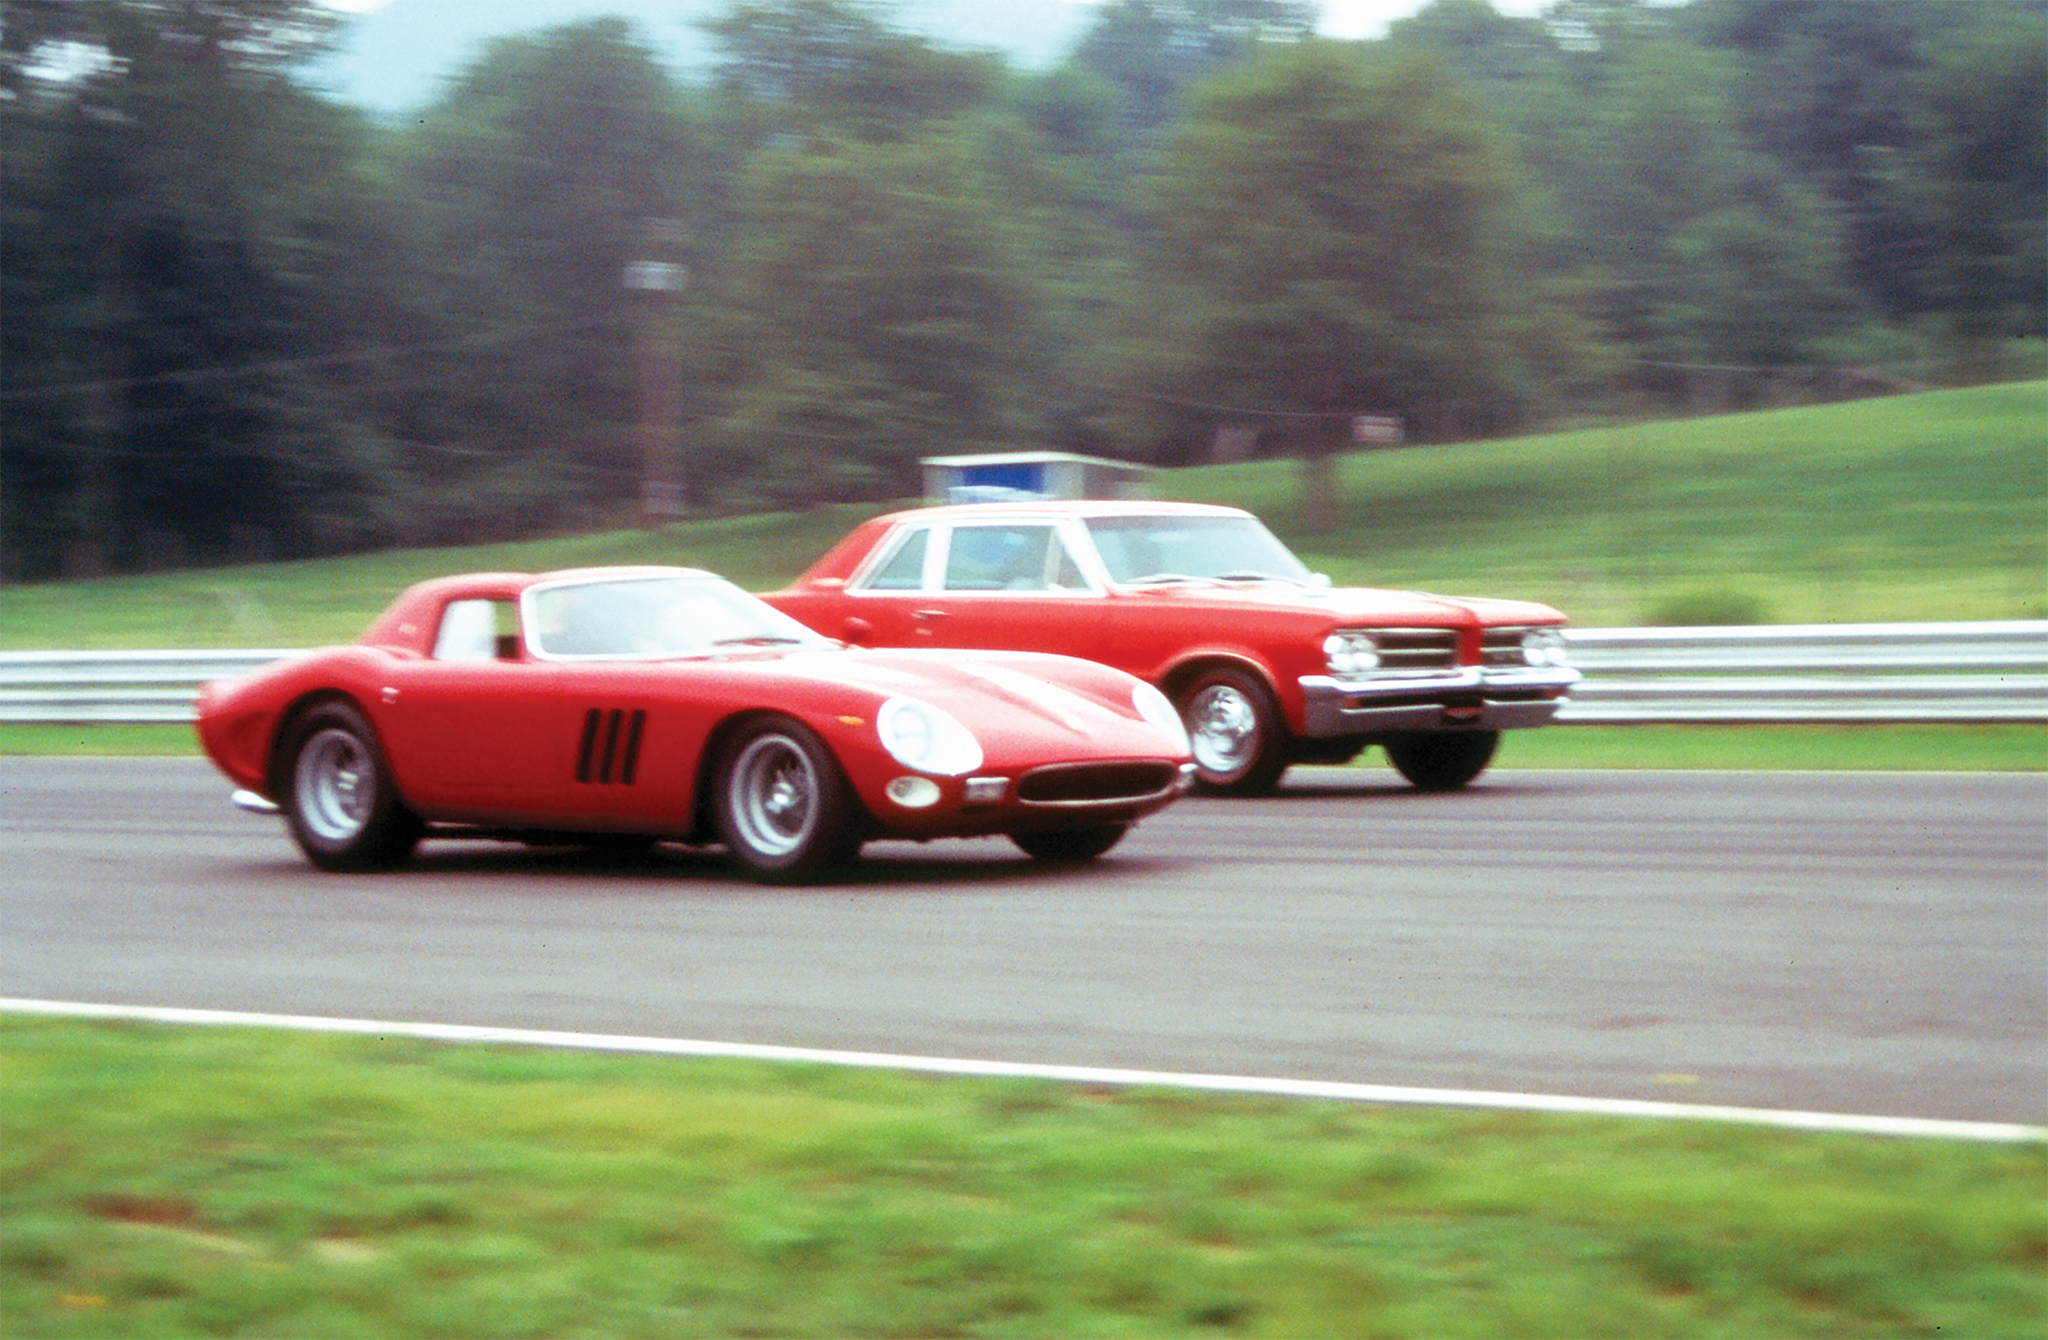 In 1995, George Ellis, Werner Pfister, and Don Keefe reunited the original Car and Driver 1964 Royal Bobcat GTO with a genuine 1964 Ferrari GTO at Lime Rock. The results were predictable—the Pontiac was a rocket on the straightaways, while the Ferrari went around the corners like it was on rails.